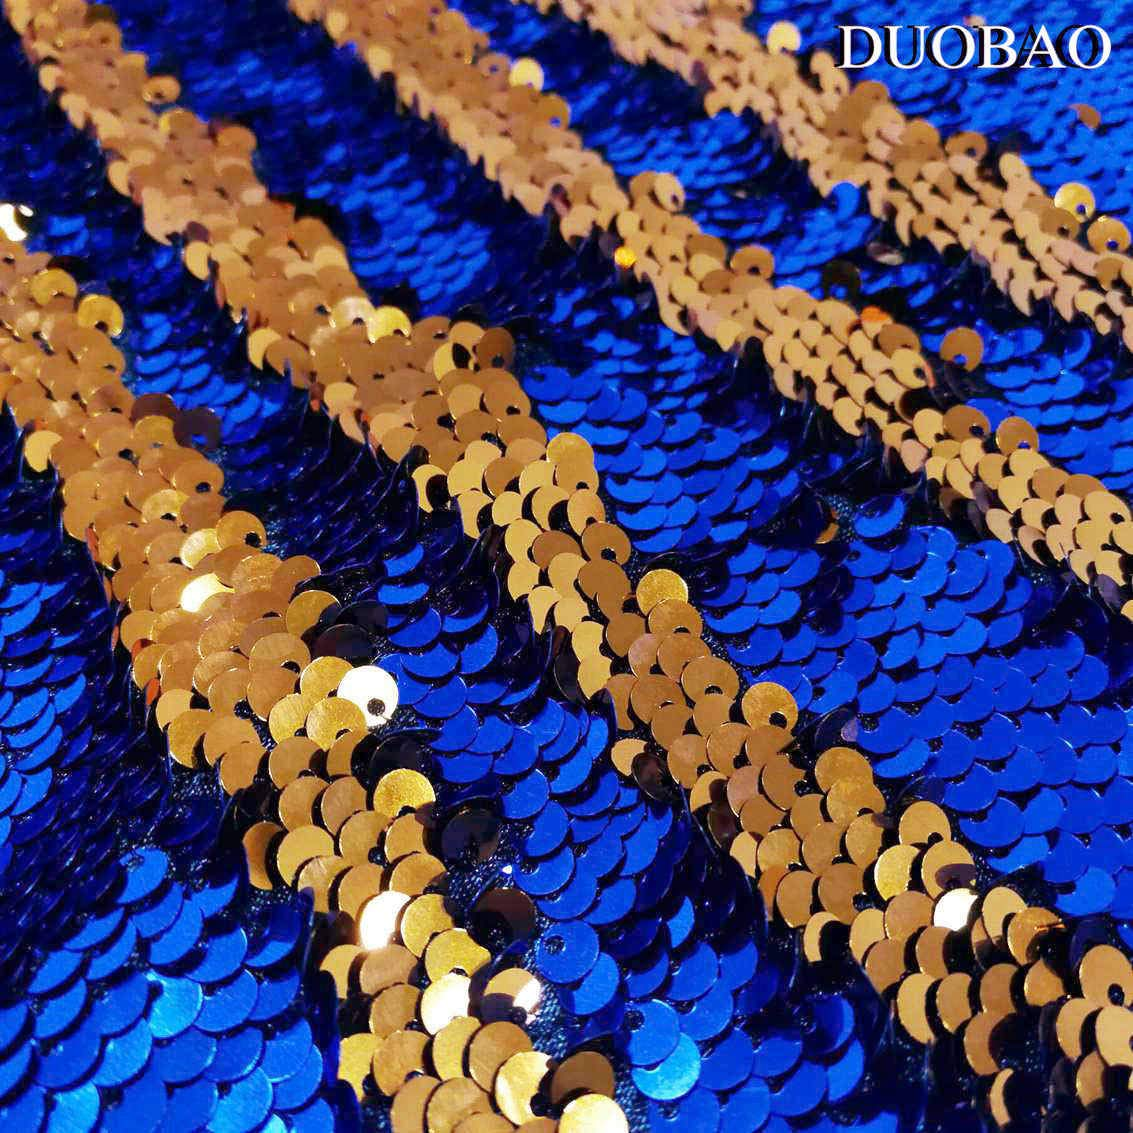 DUOBAO Sequin Backdrop 8Ft Royal Blue to Orange Mermaid Sequin Backdrop Fabric 6FTx8FT Two Tone Sequin Curtains by DUOBAO (Image #5)